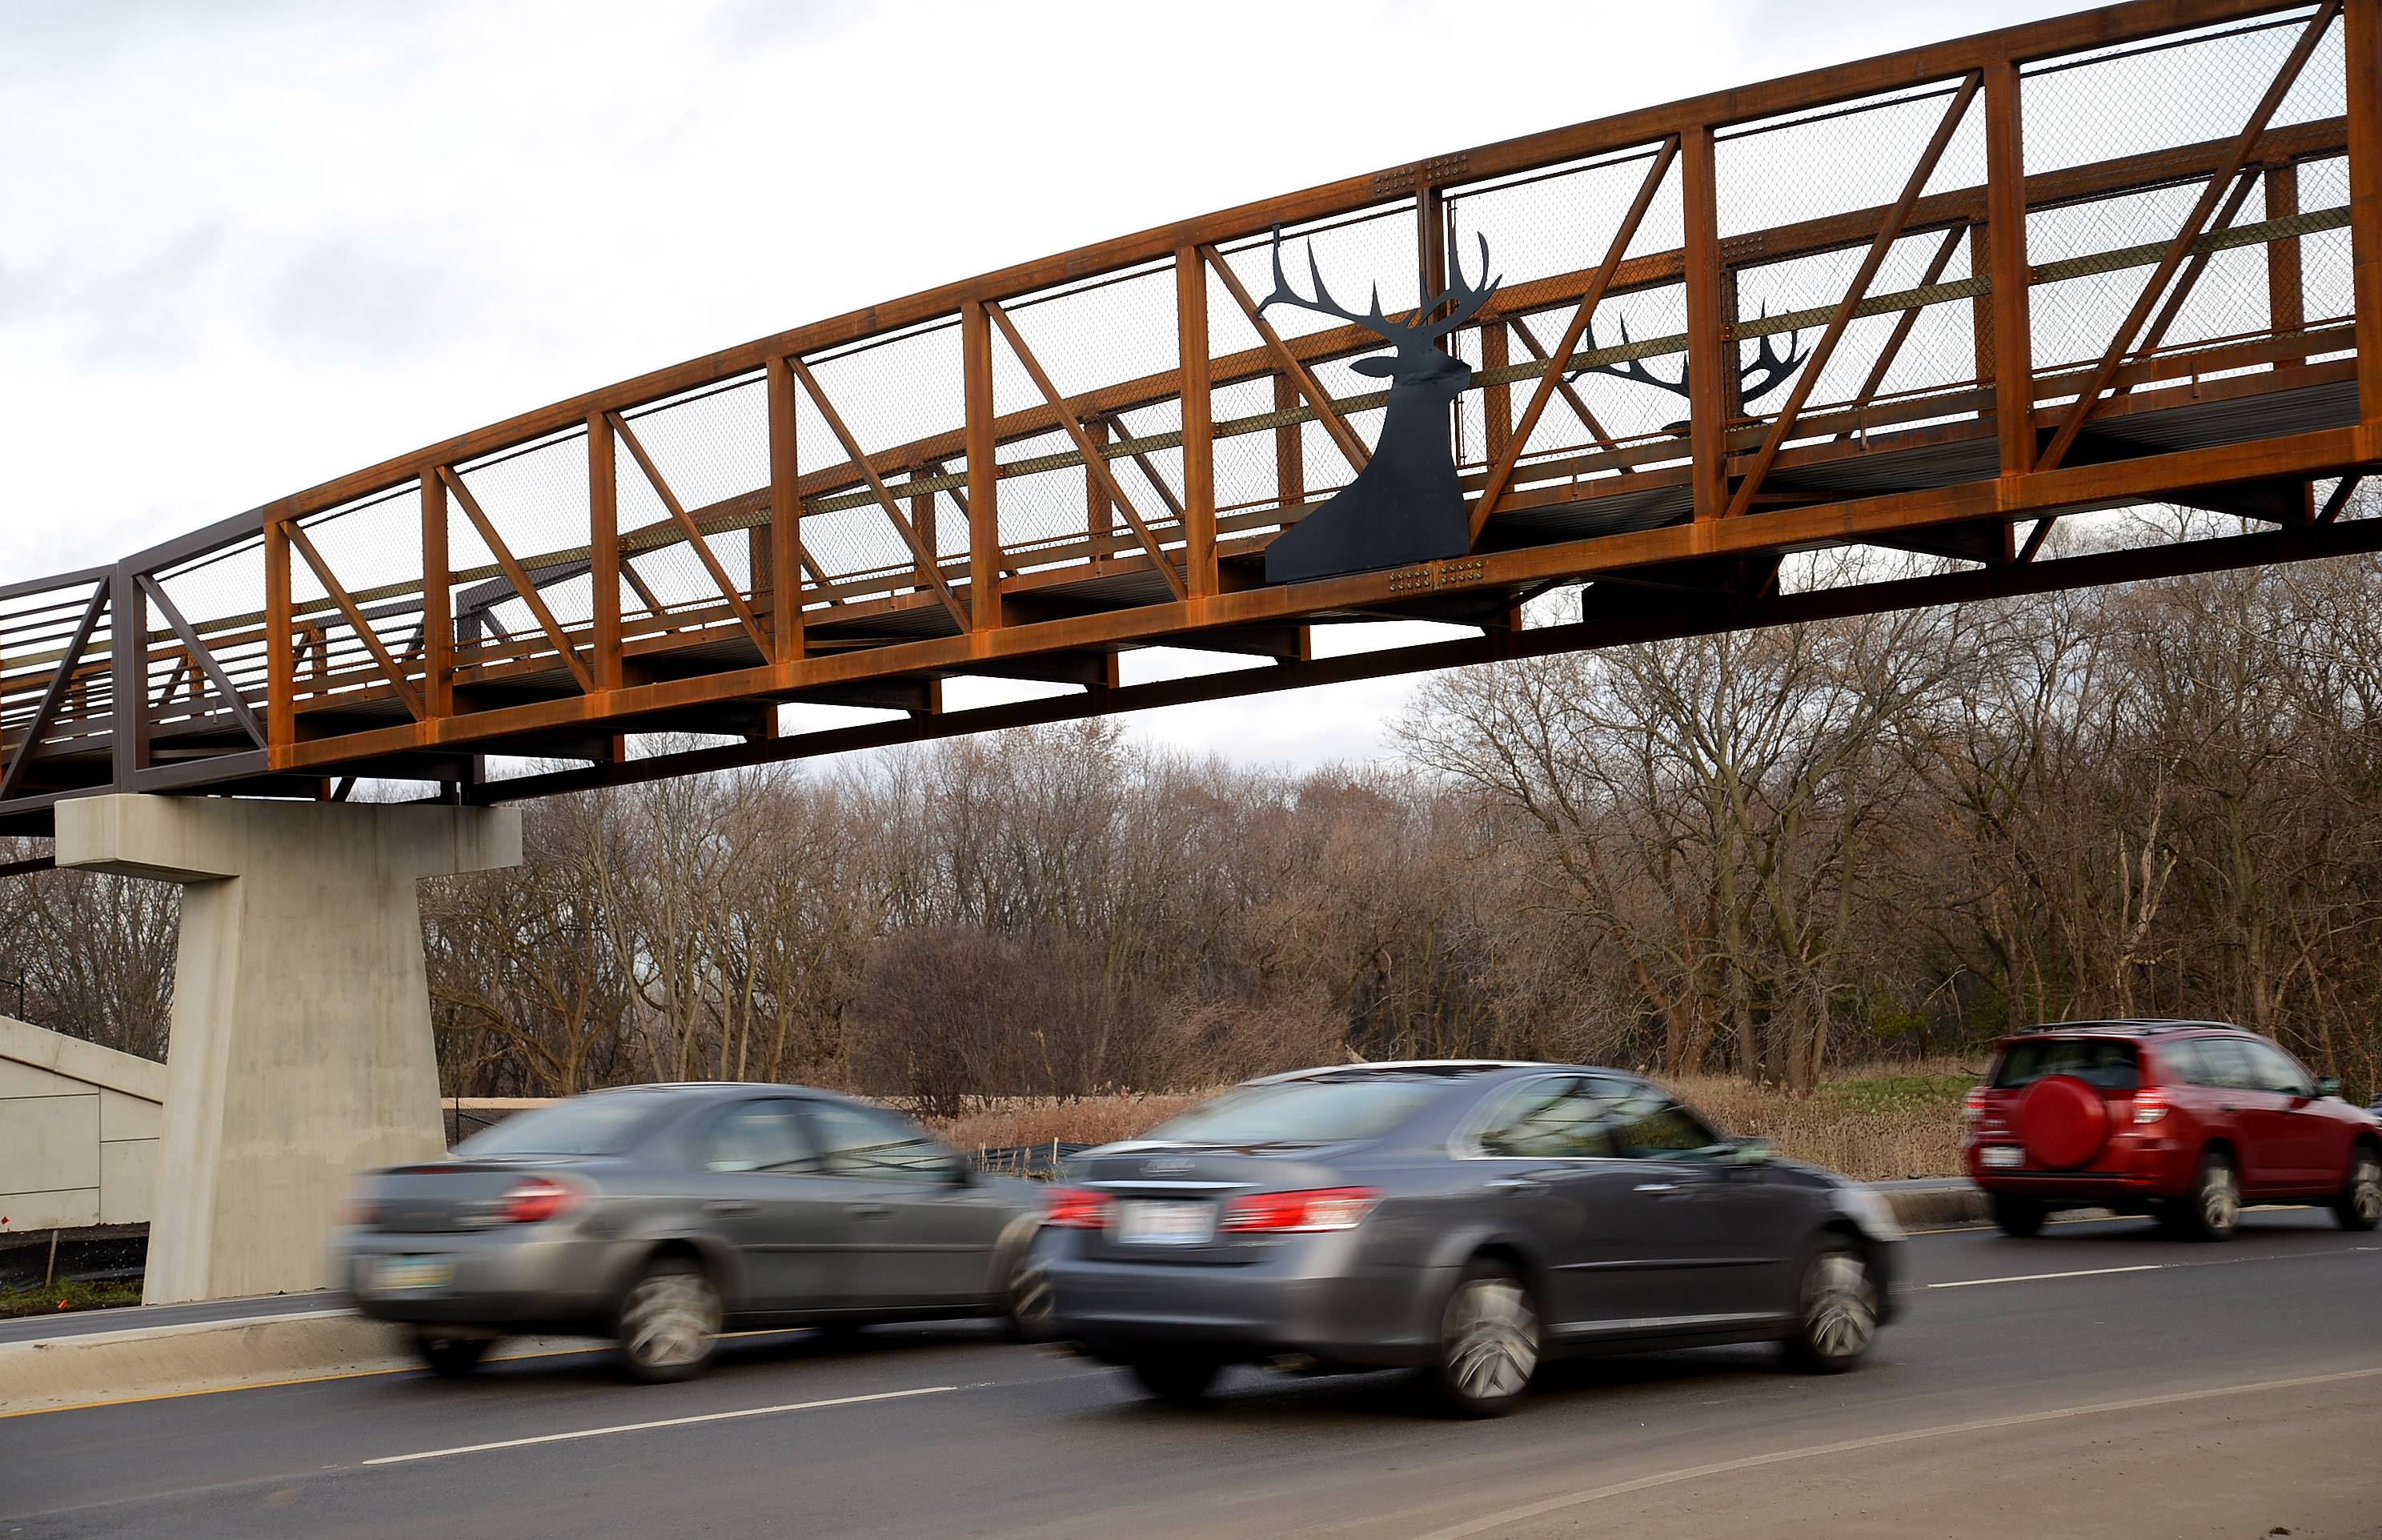 A pedestrian bridge installed over Higgins Road last November was named transportation project of the year by the American Public Works Association.